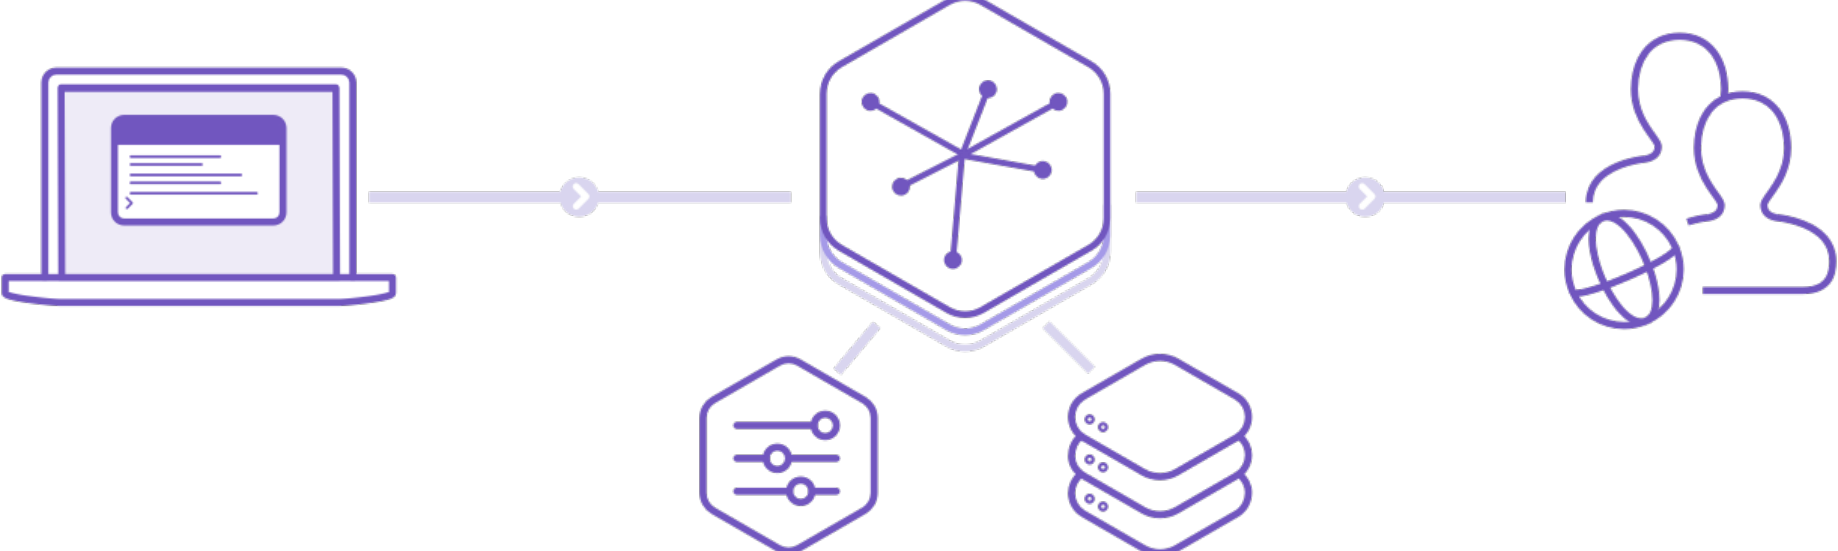 What Is Heroku And How To Deploy Your App In Five Minutes Rails Js By Pavel Beletsky Medium